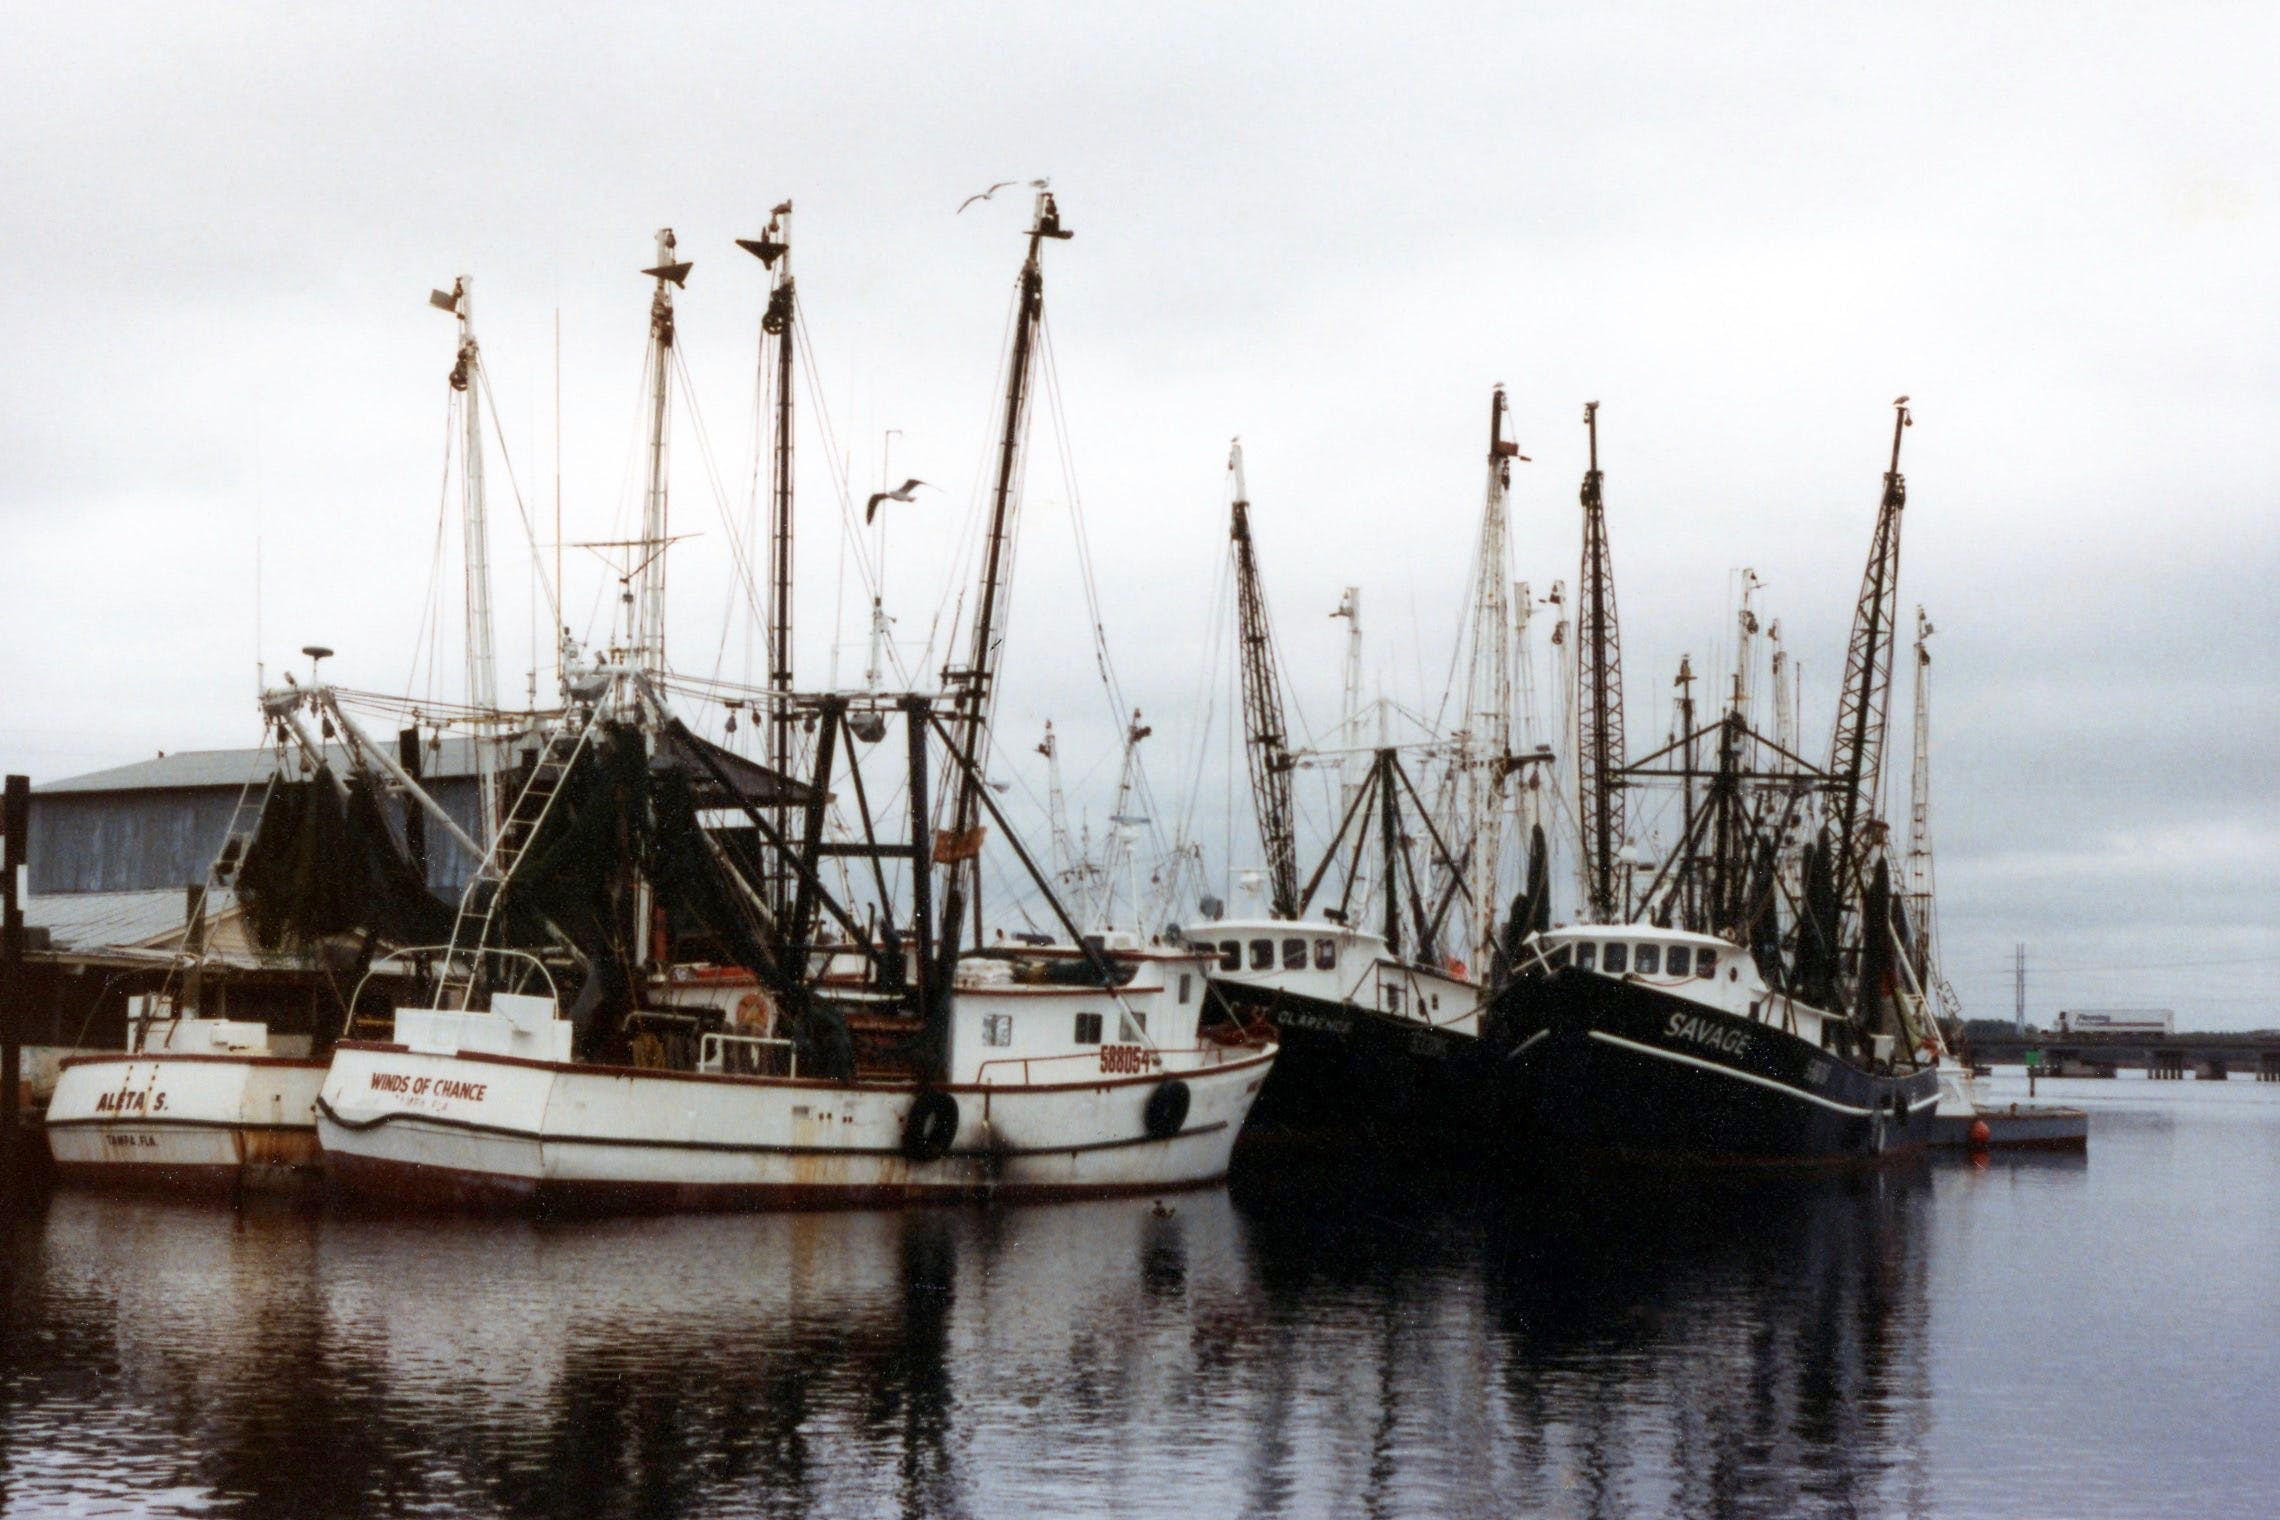 Several White Boats Near Dock